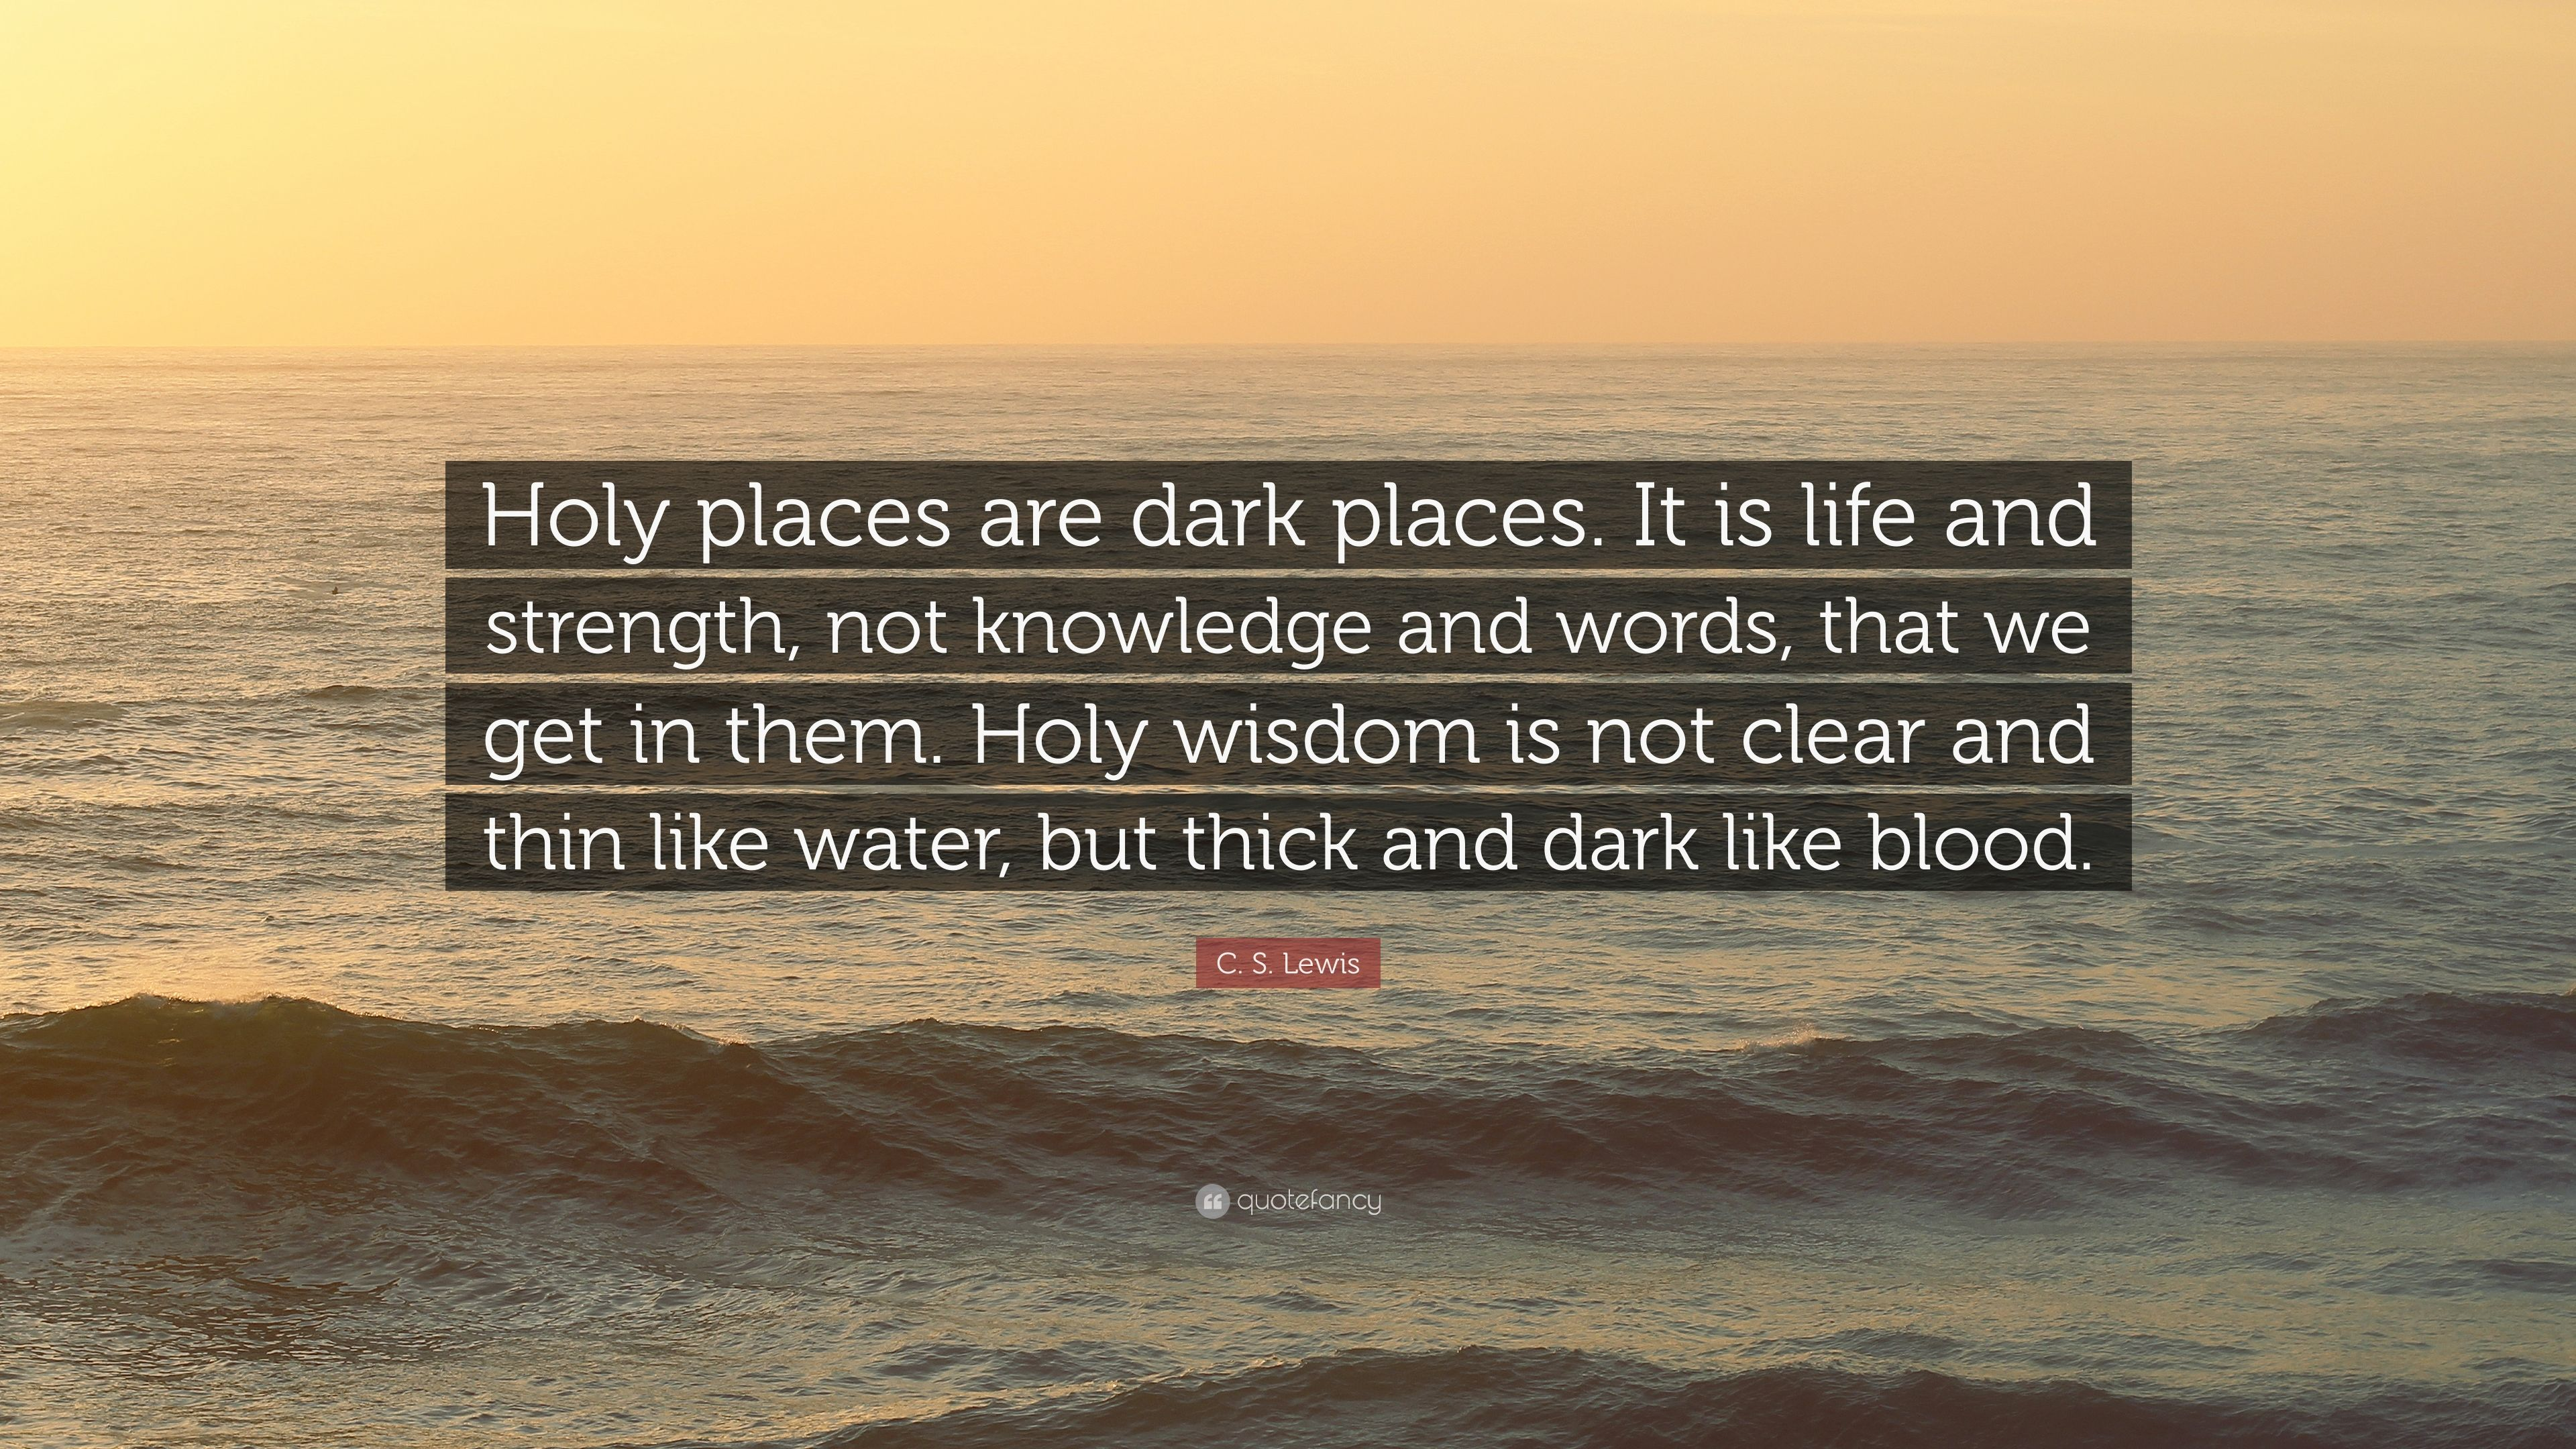 C. S. Lewis Quote: U201cHoly Places Are Dark Places. It Is Life And Strength